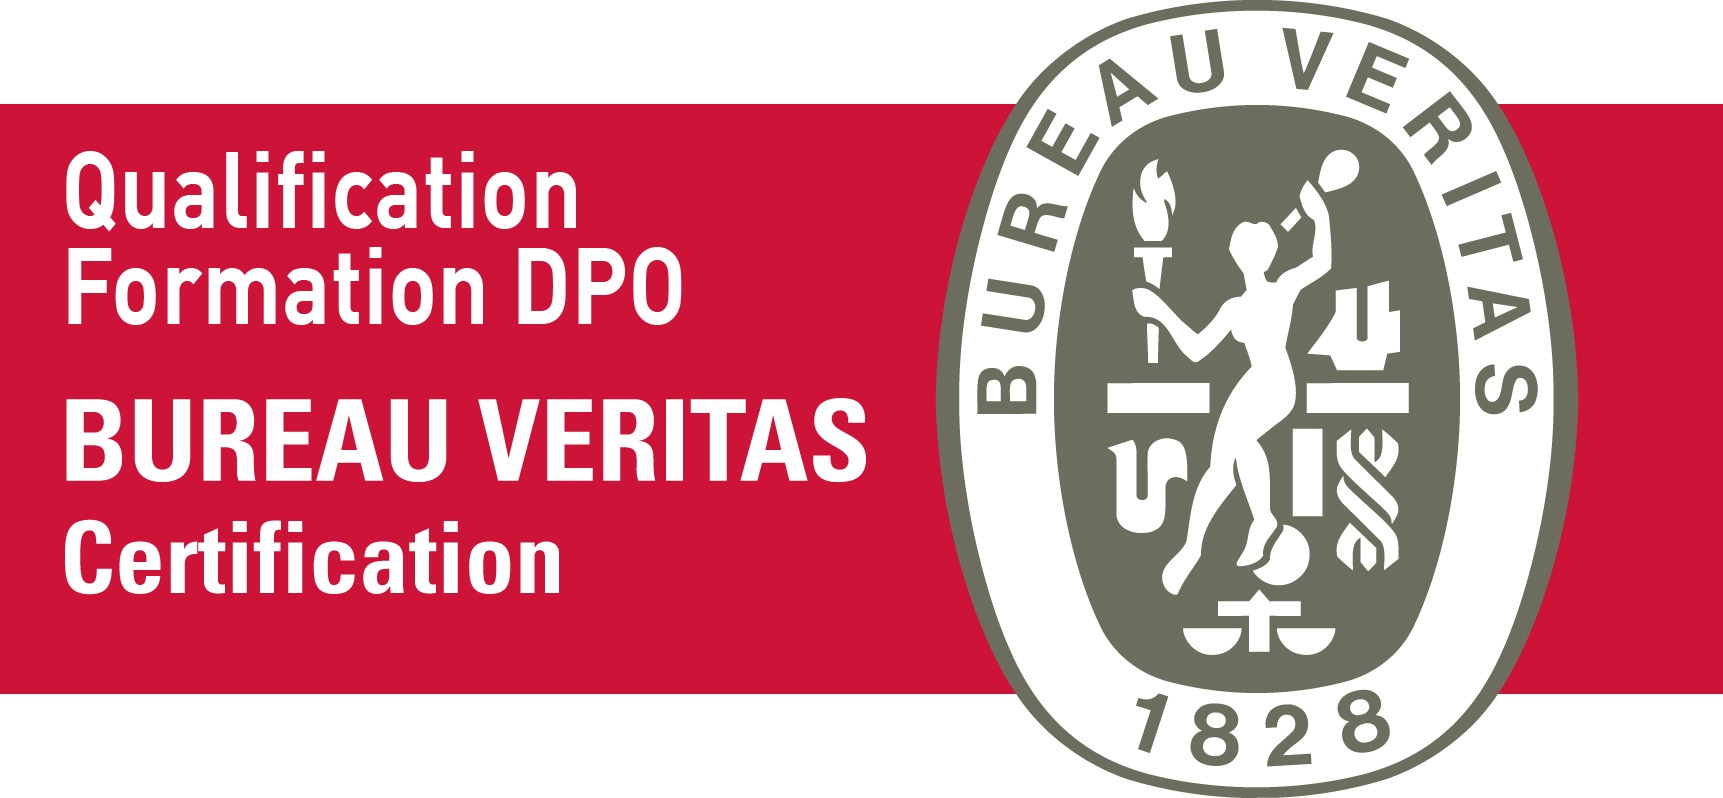 BV_Certification_DPO